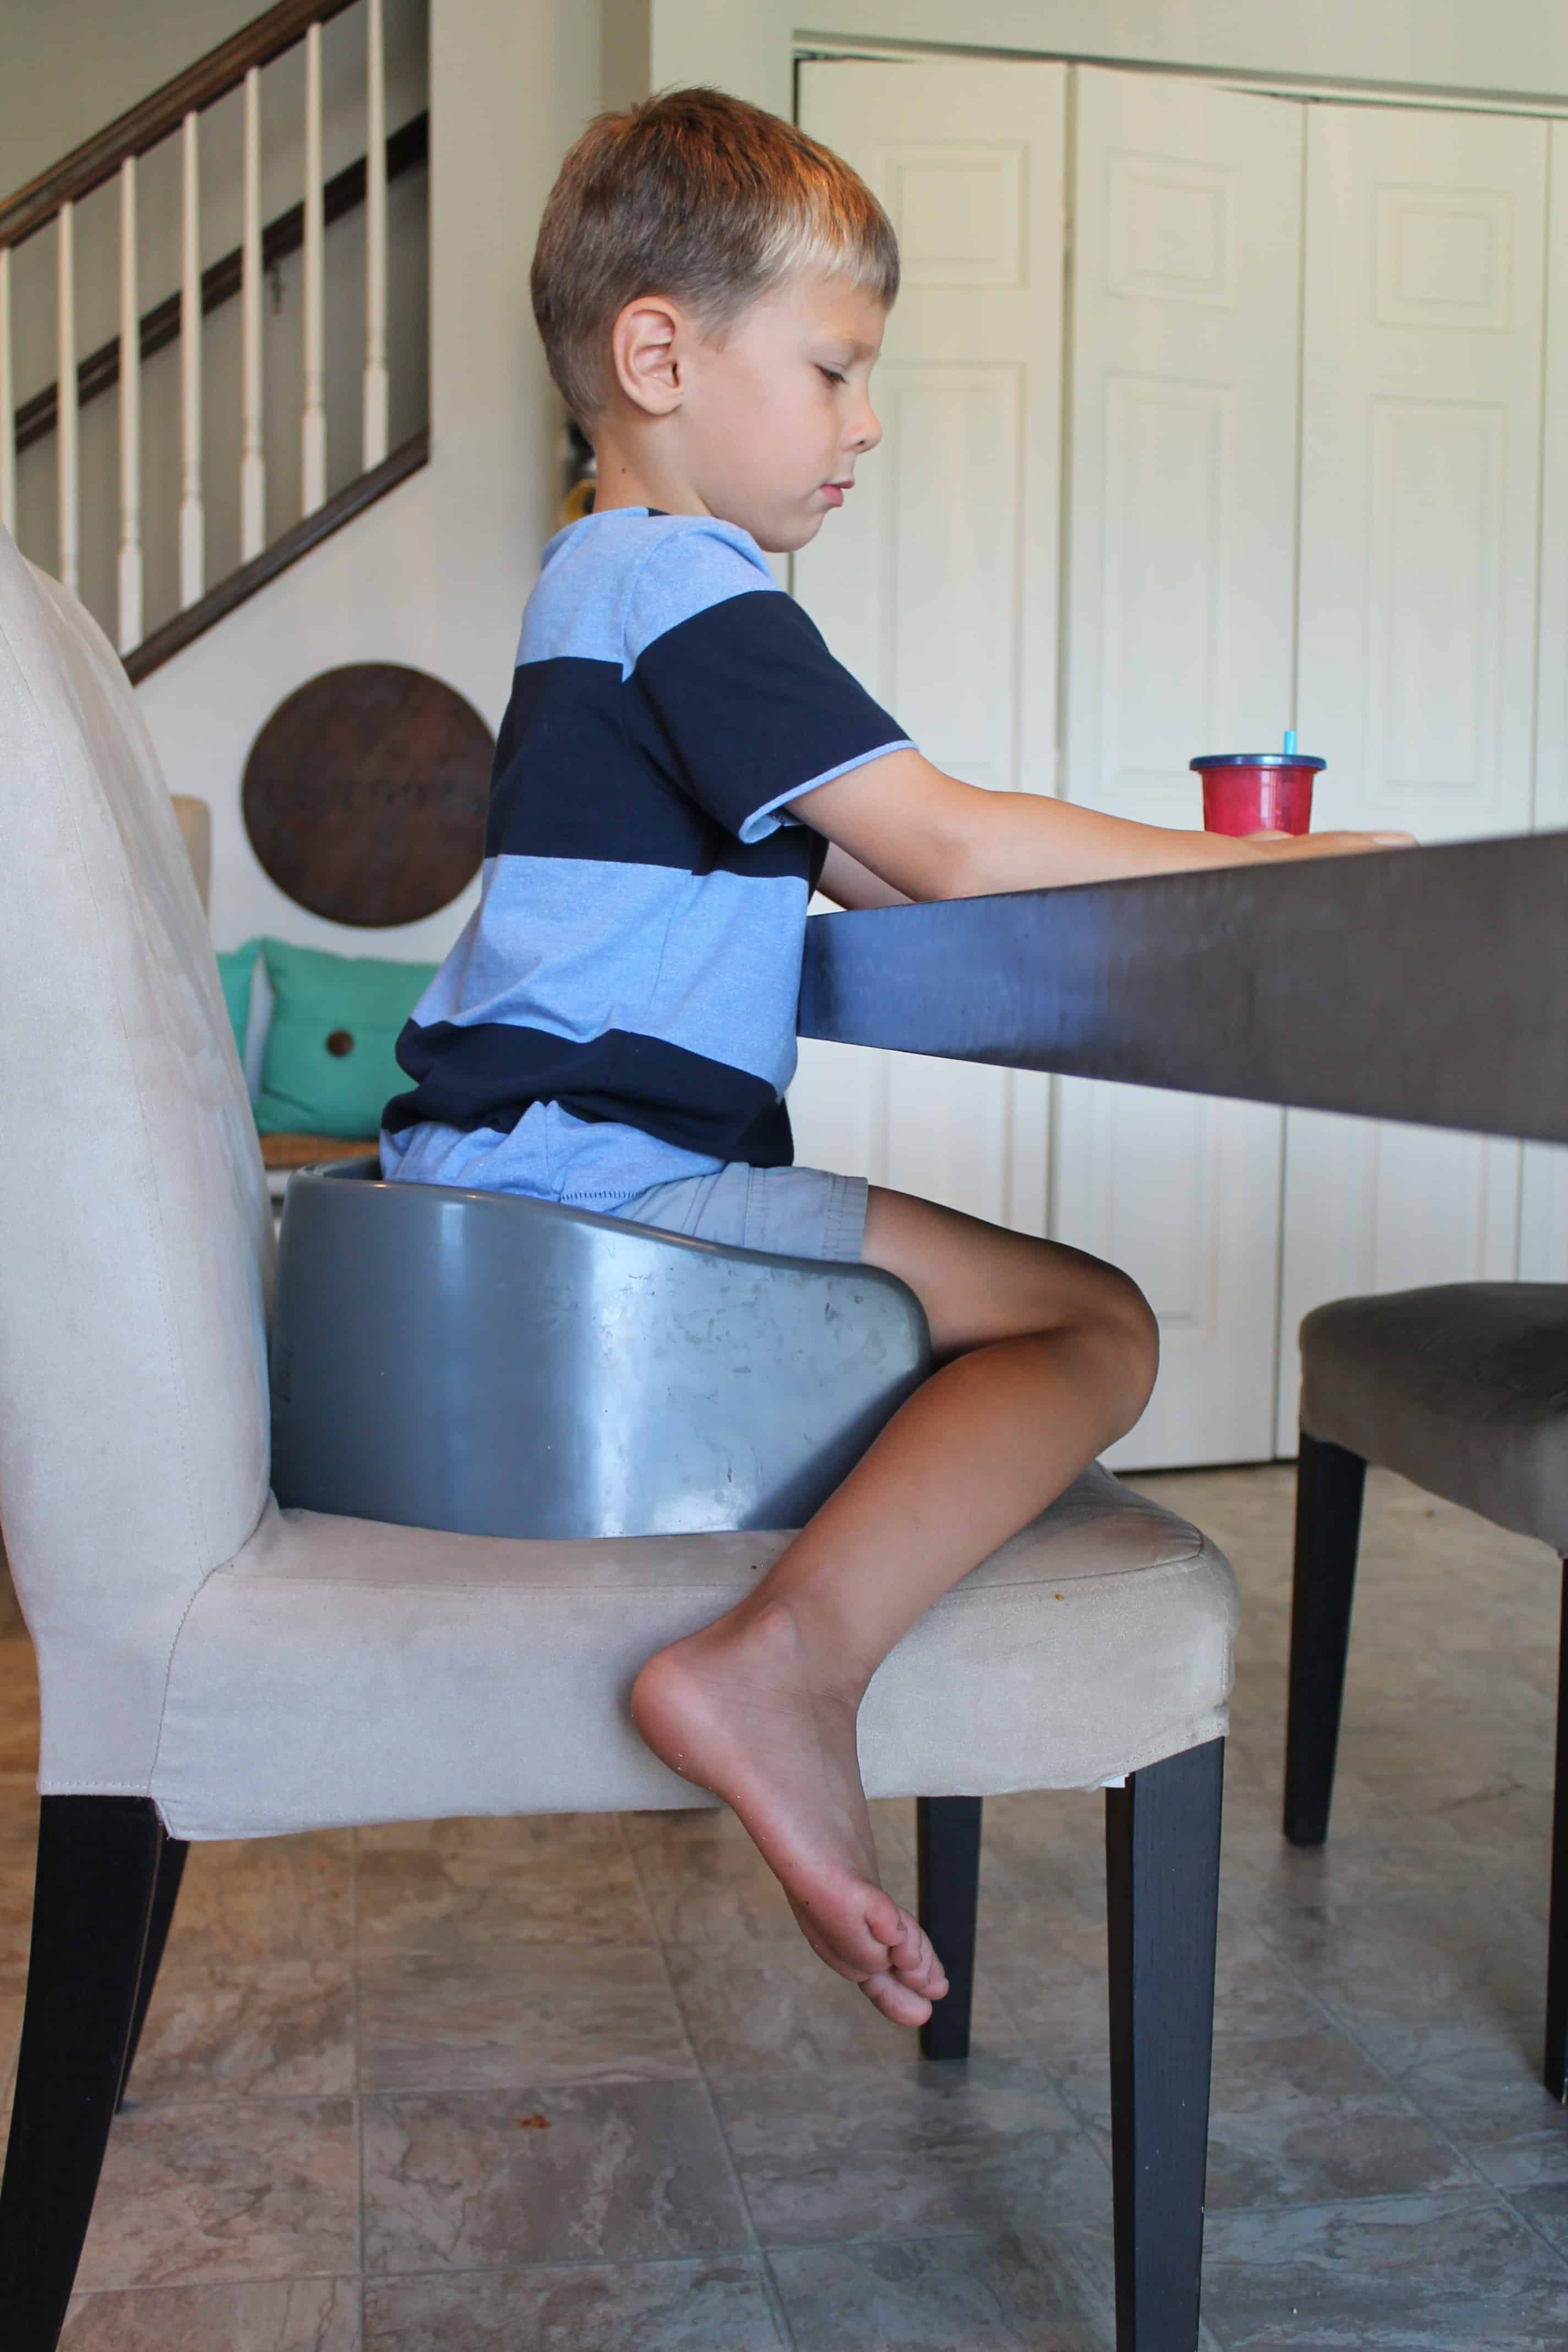 Stupendous Best Seated Position For Kids During Mealtime Gamerscity Chair Design For Home Gamerscityorg